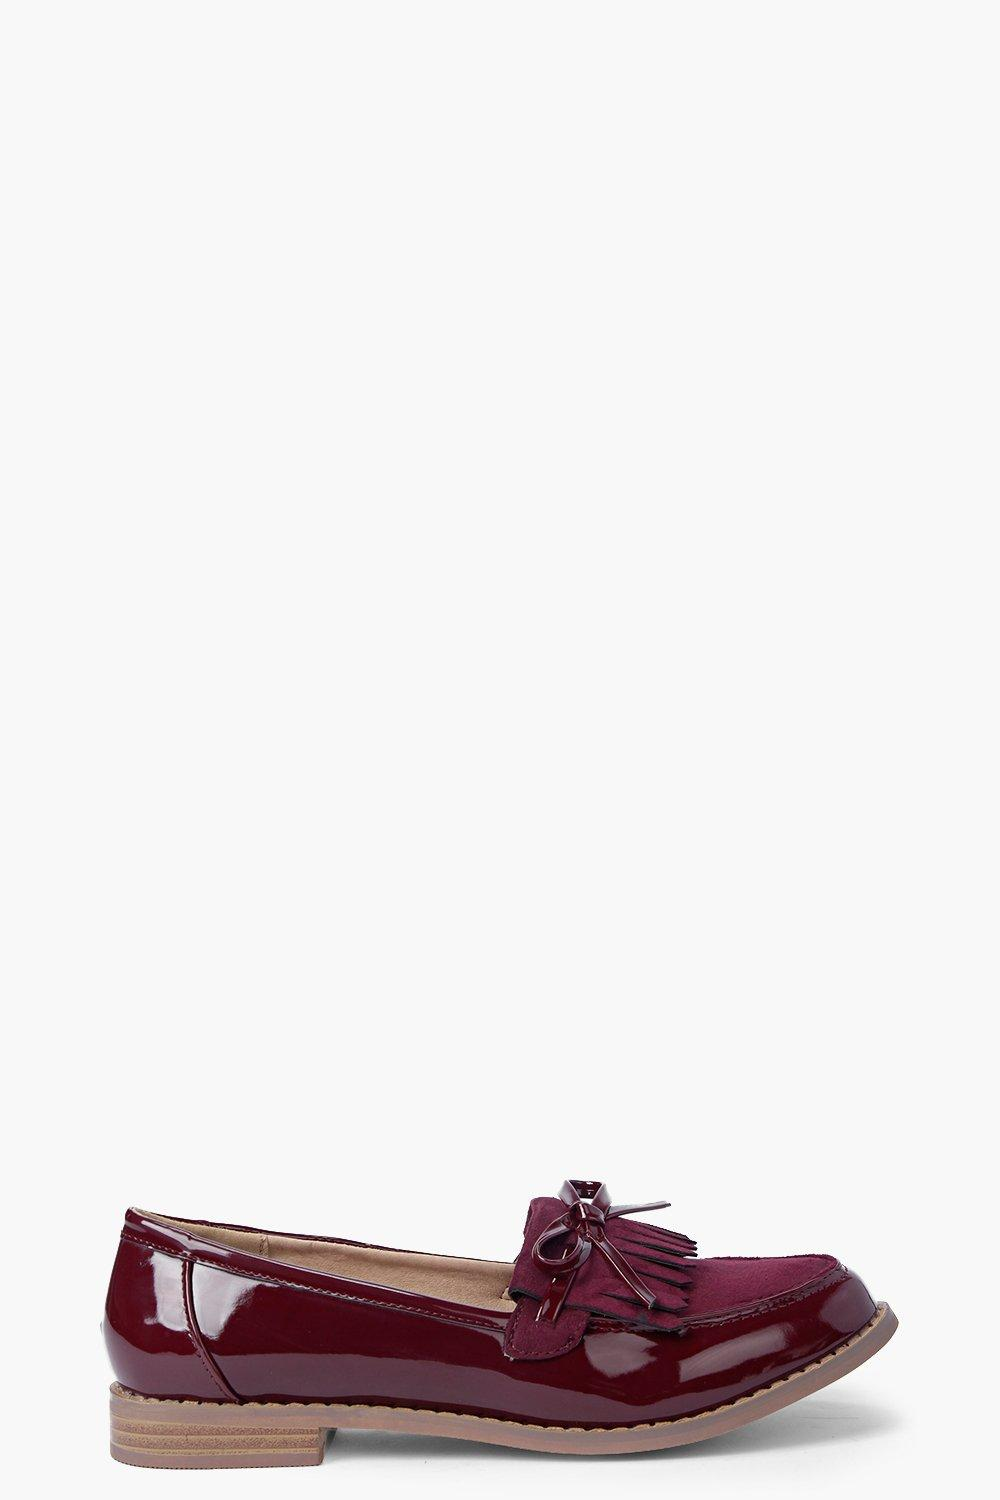 Evie Contrast Patent and Suedette Bow Trim Loafer